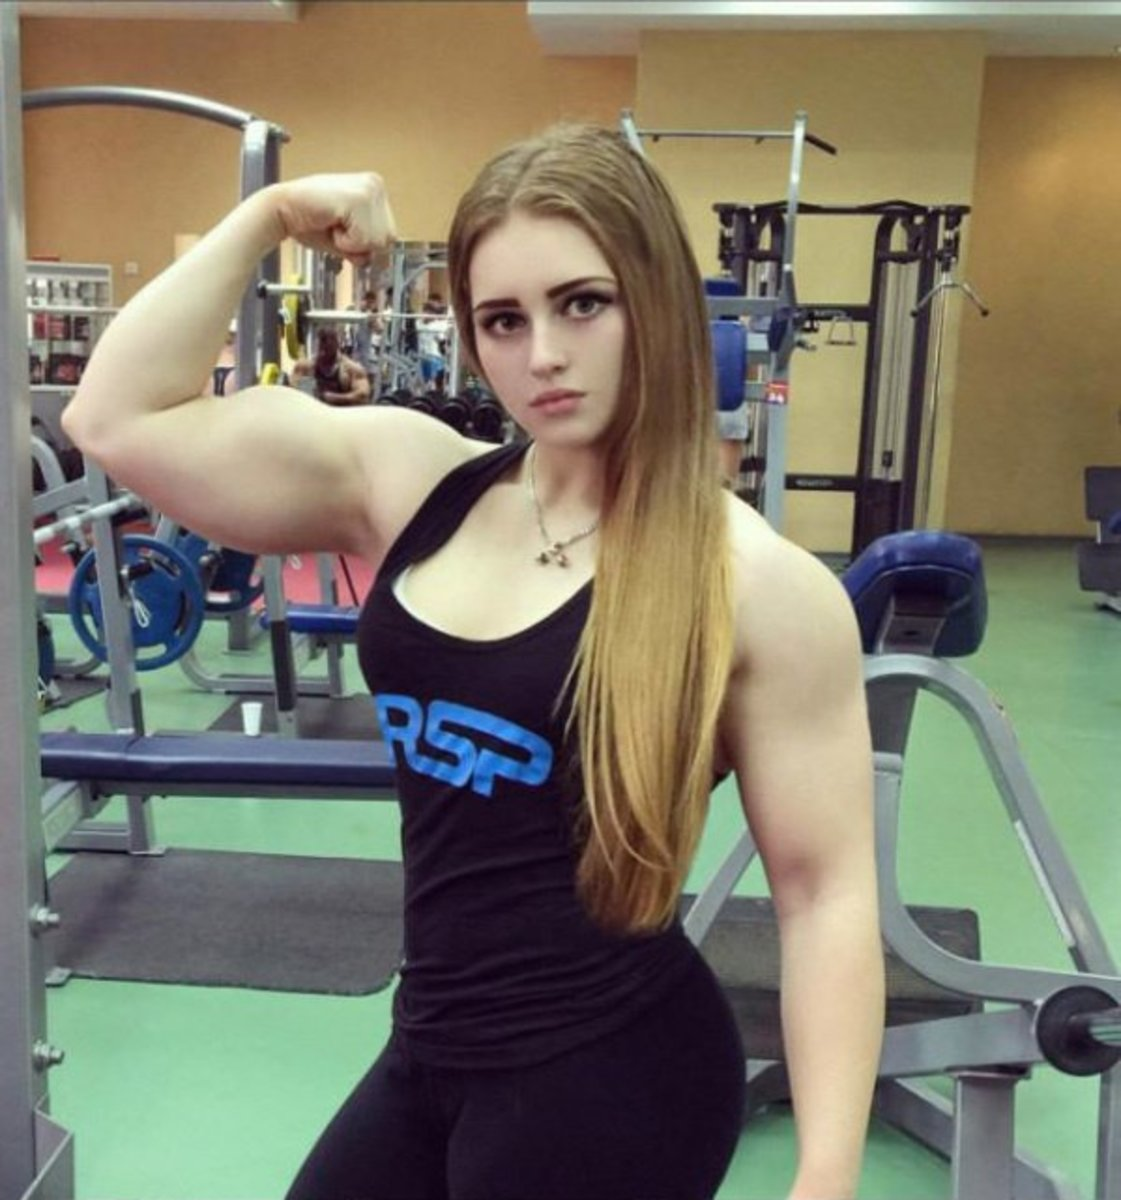 Here is a picture of Julia Vins showing her bicep muscle.